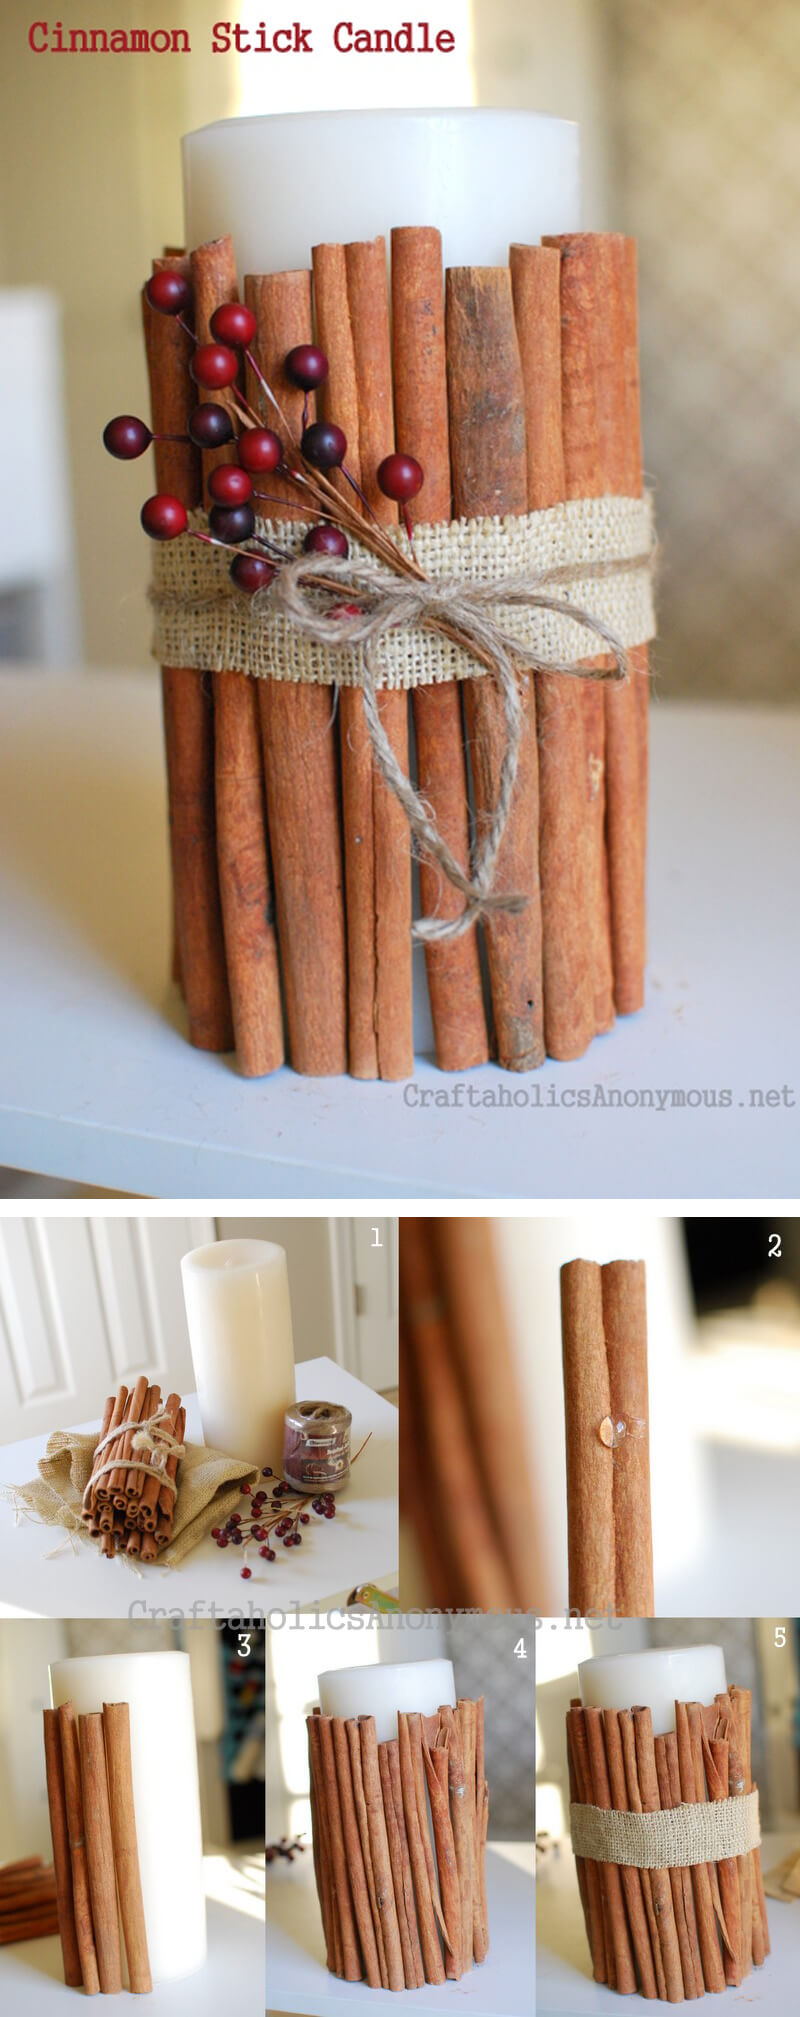 15 Great DIY Candle Making and Decorating Tutorials